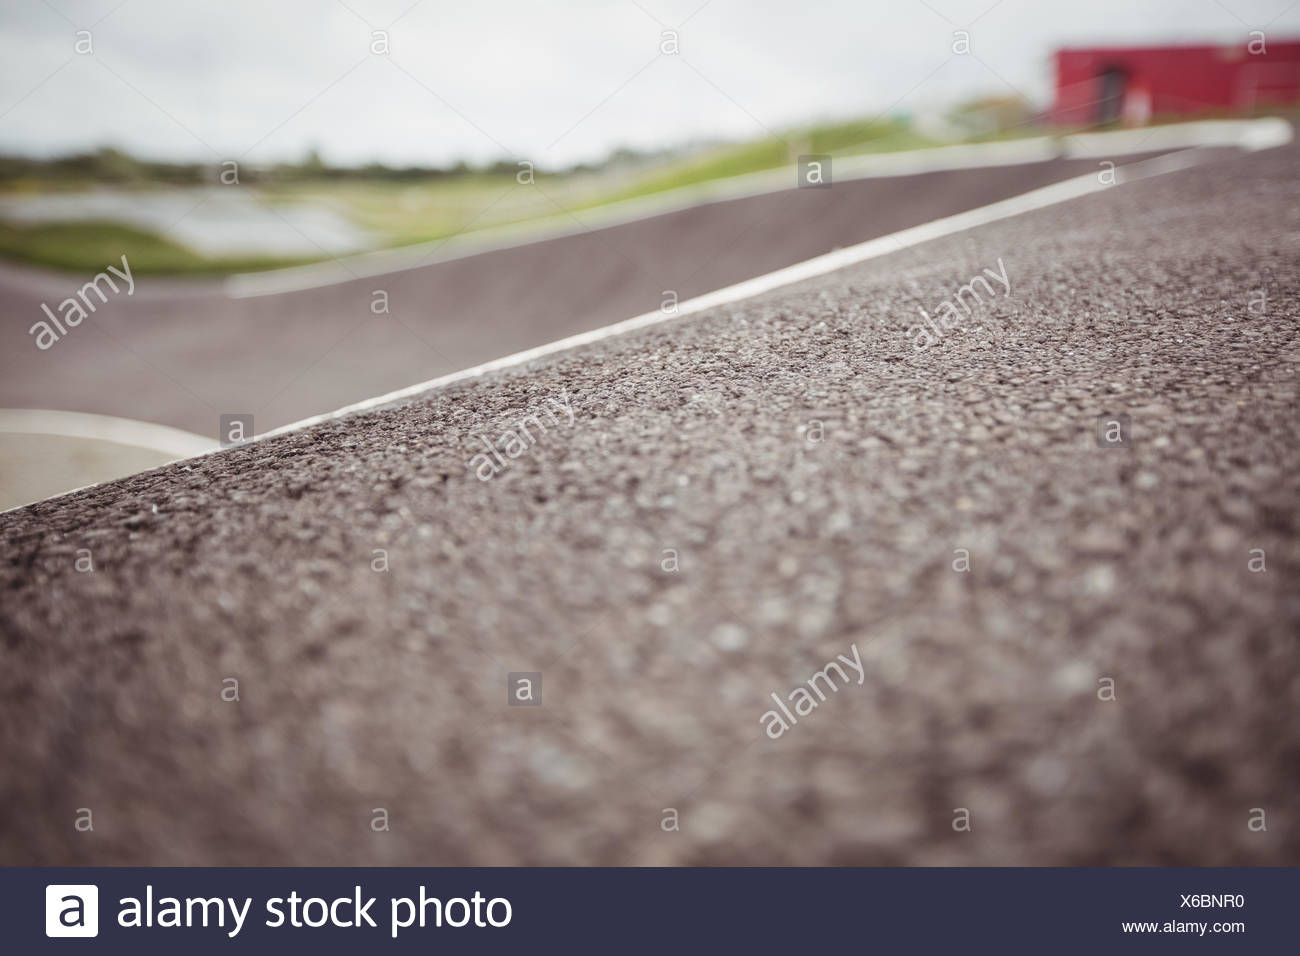 Surface of road in skatepark - Stock Image